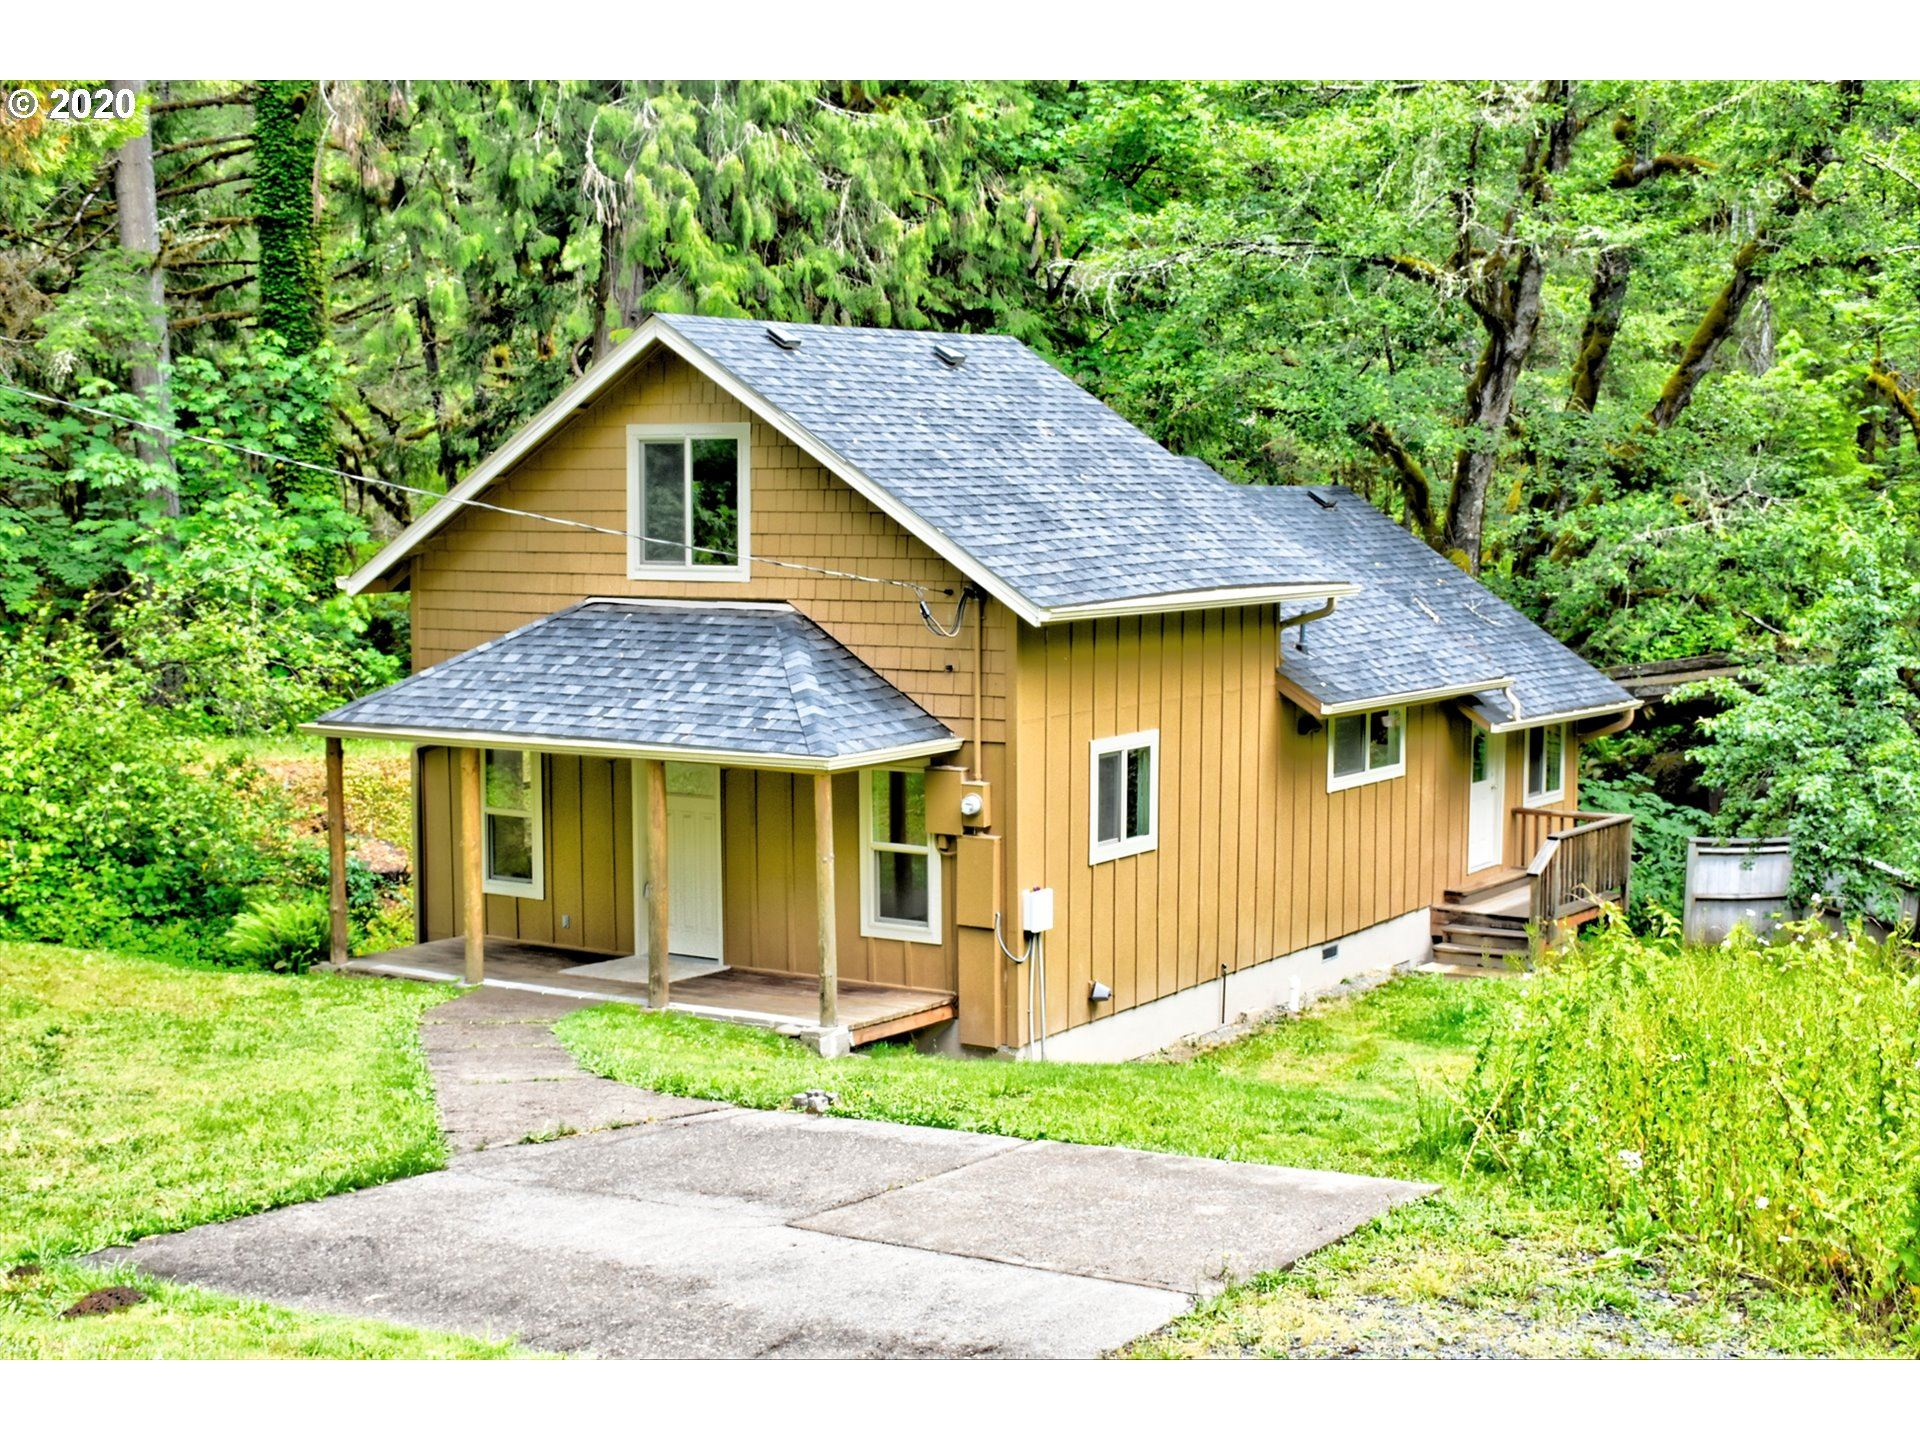 Photo for 80605 LOST CREEK RD, Dexter, OR 97431 (MLS # 20273856)